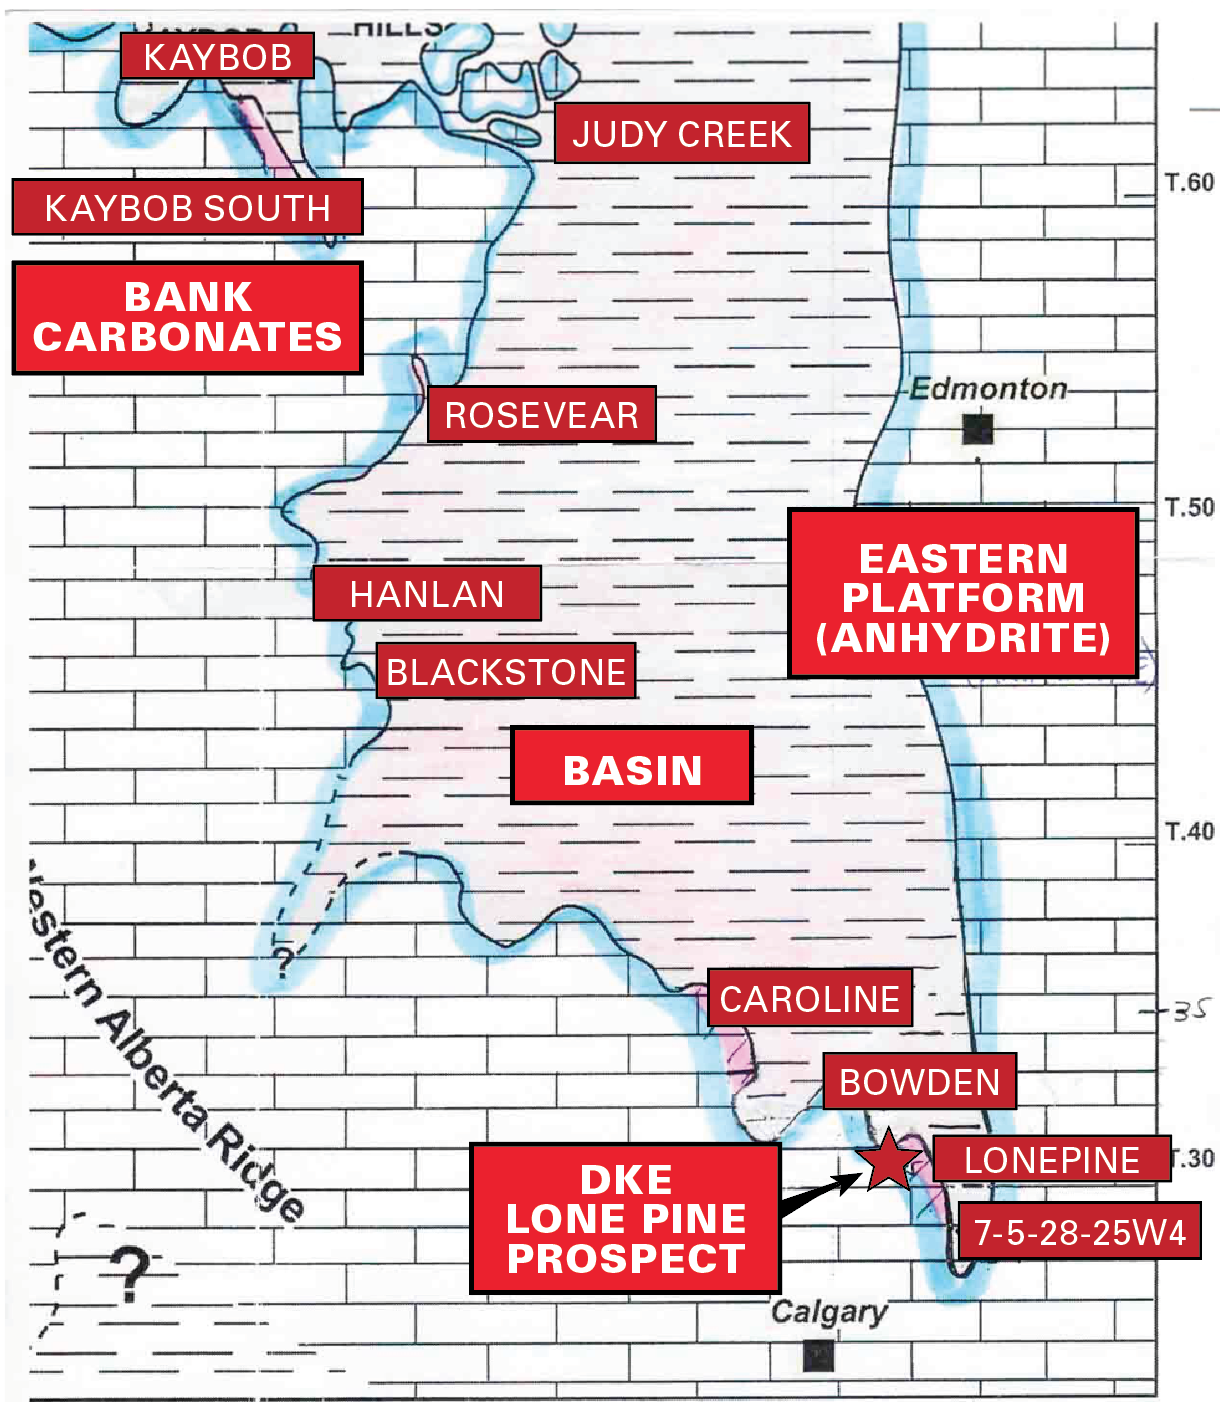 MAP 3 <click to enlarge> Swan Hills Regional Map with Carbonate Bank Edge THE FEBRUARY 1986 DISCOVERY